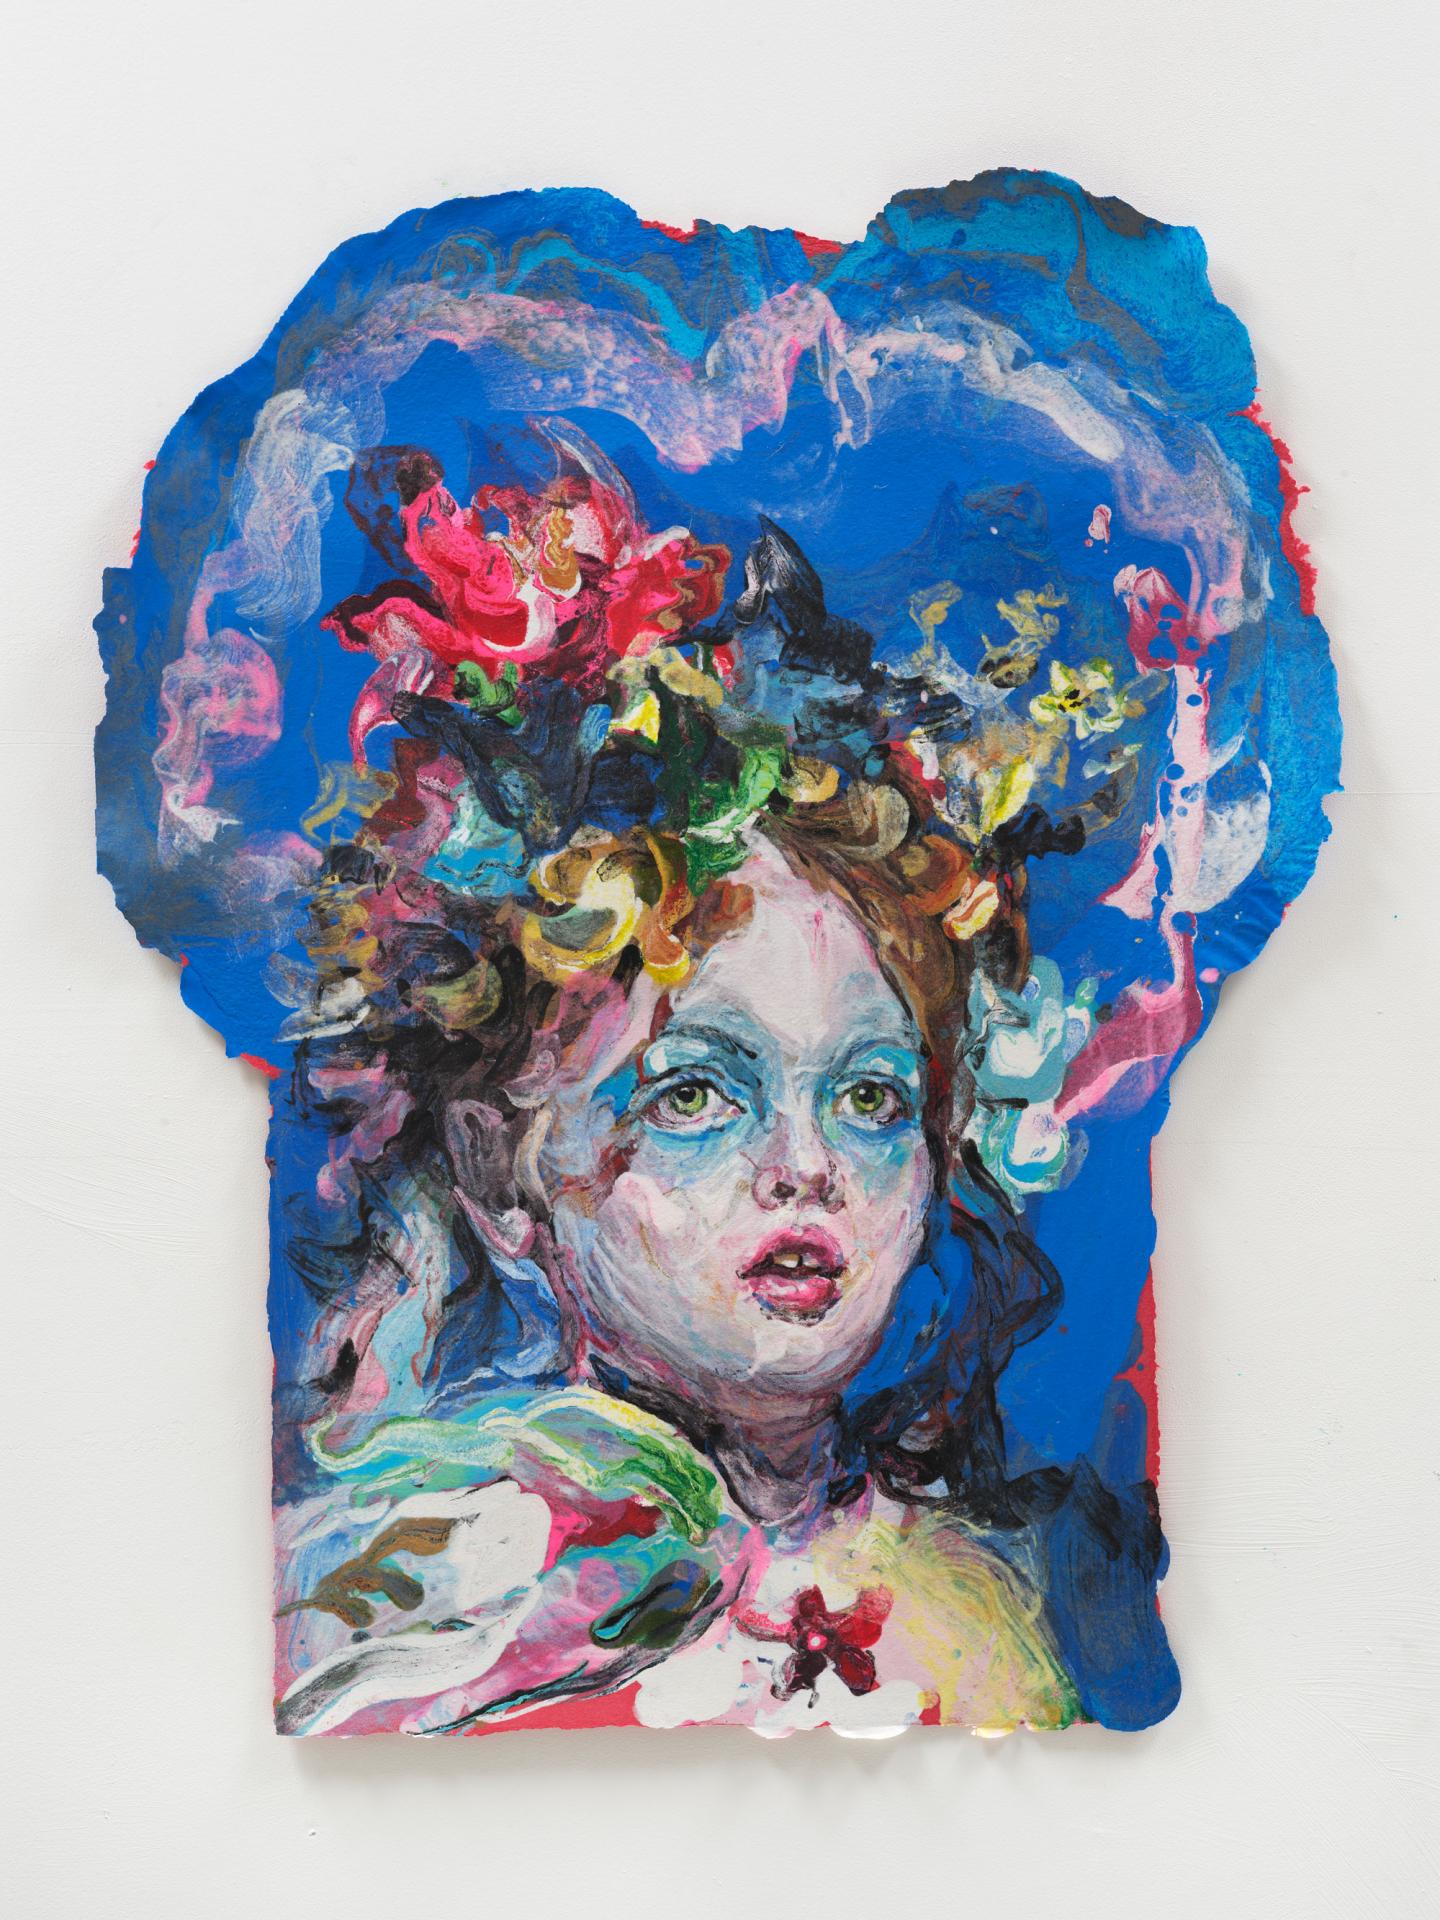 Woman, Blue 2021  Linen paper pulp on cotton base sheet  29 x 21 inches  (73.7 x 53.3 cm)   Inquire